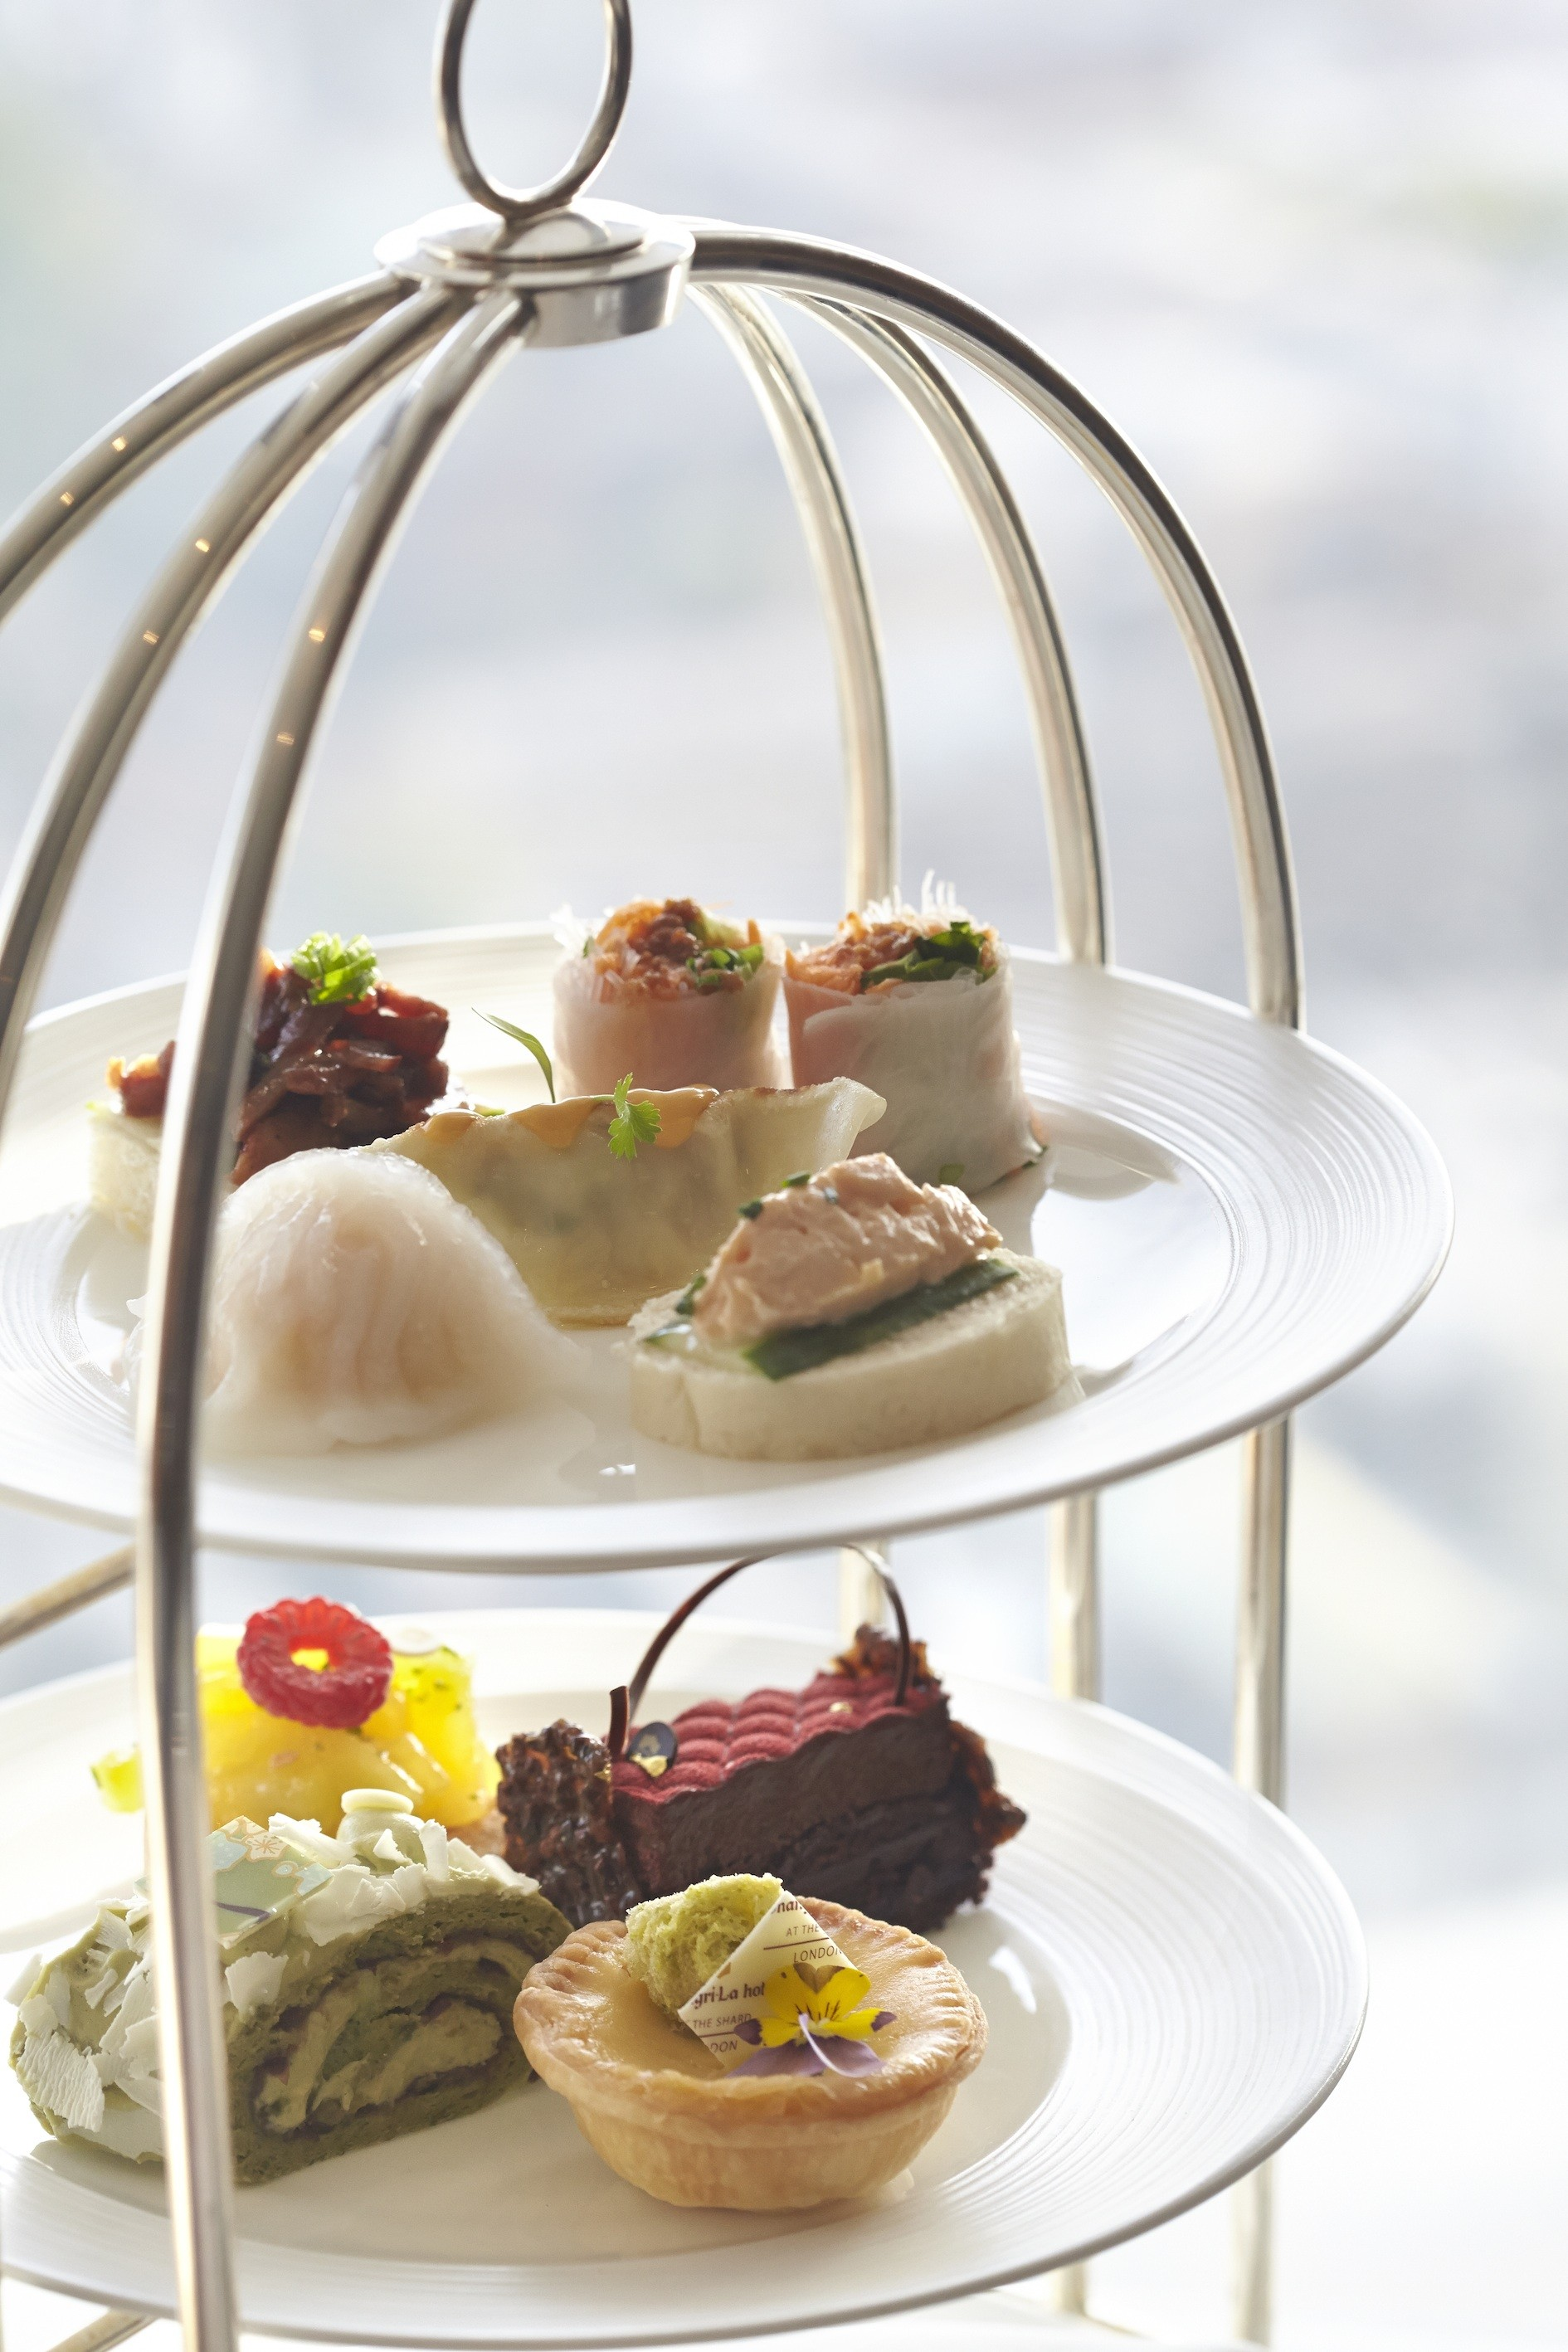 TING, Shangri-La Hotel, The Shard: Afternoon Tea Review